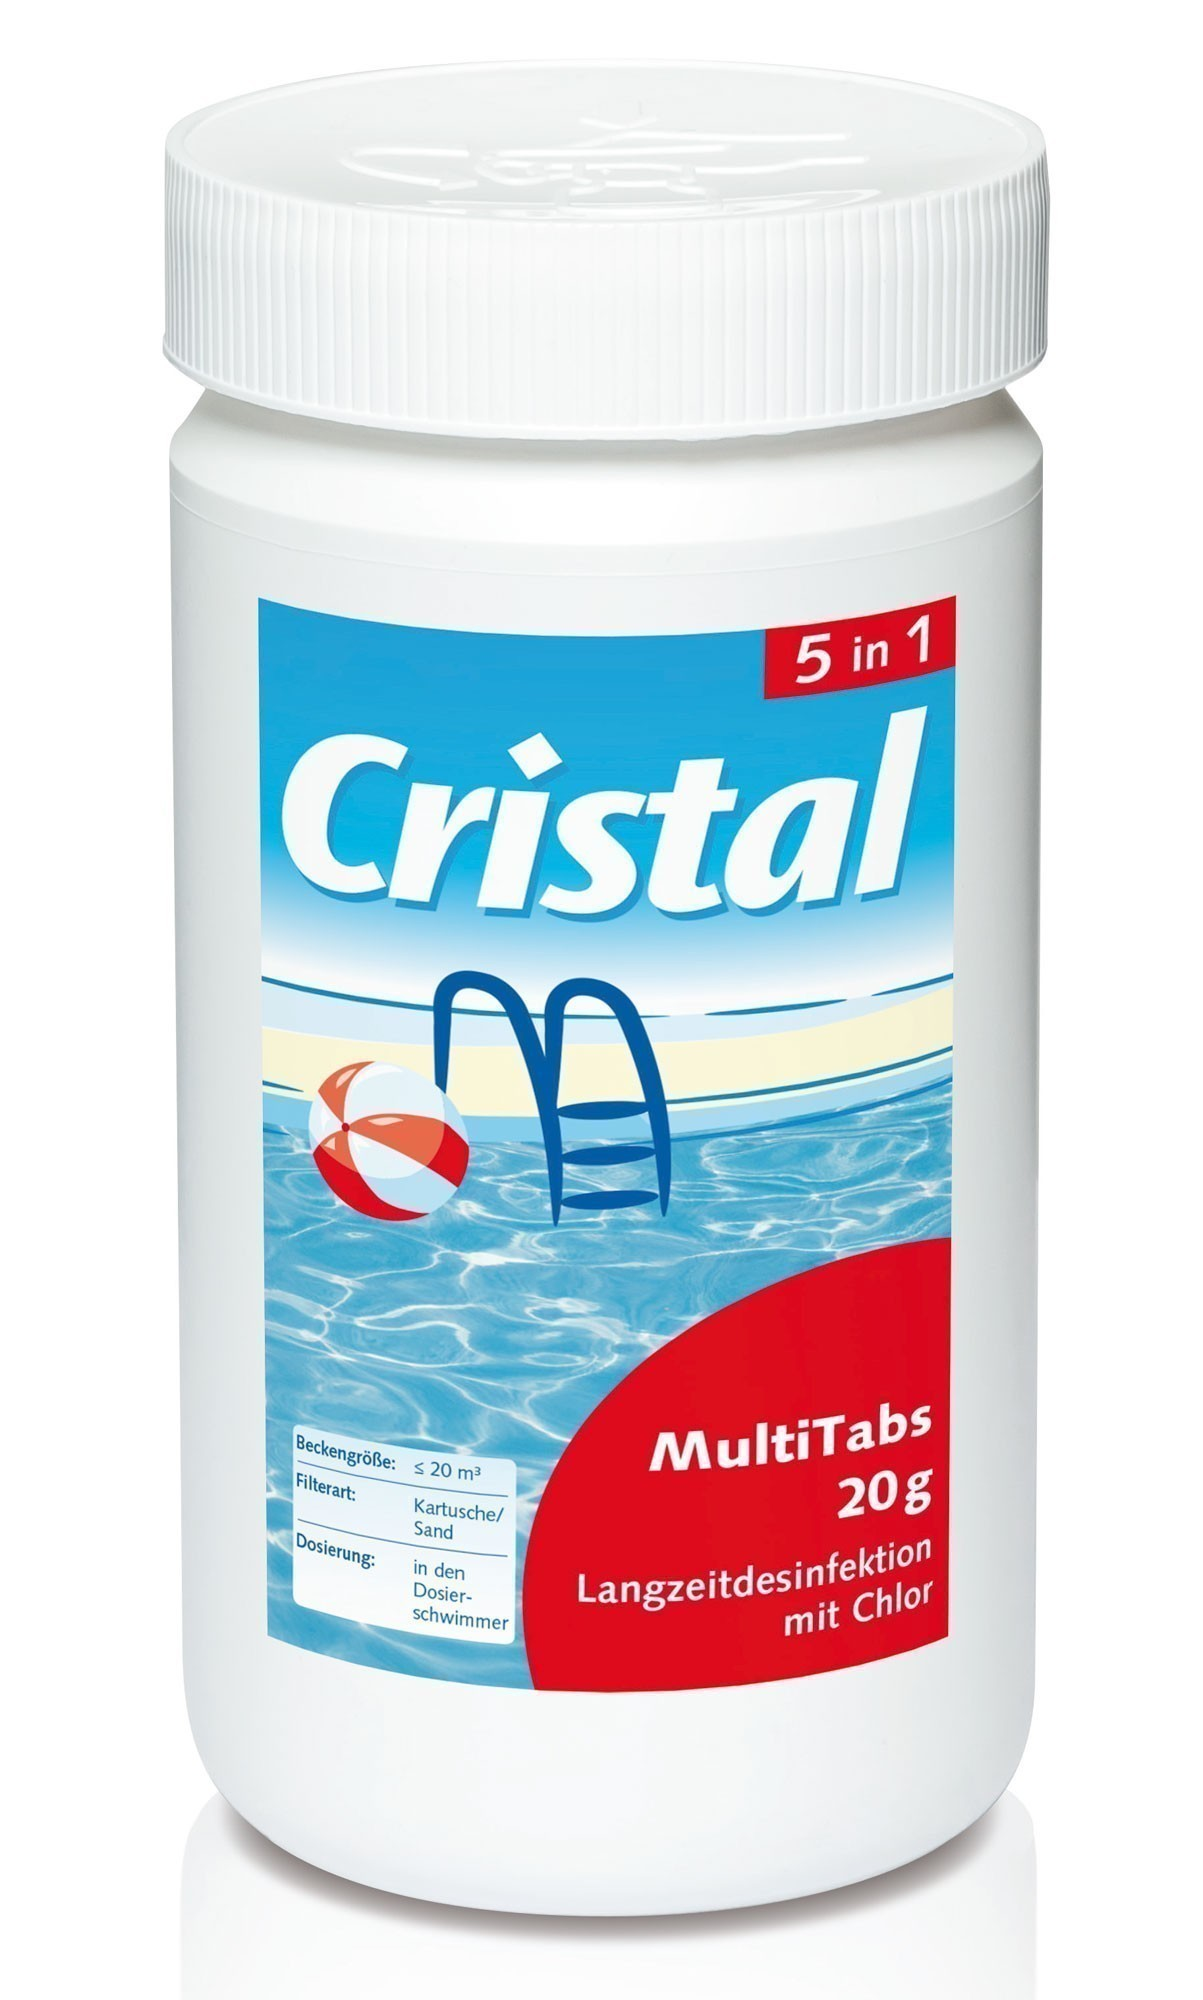 cristal wasserpflege desinfektion multi tabs 5in1 inhalt 1kg bei. Black Bedroom Furniture Sets. Home Design Ideas